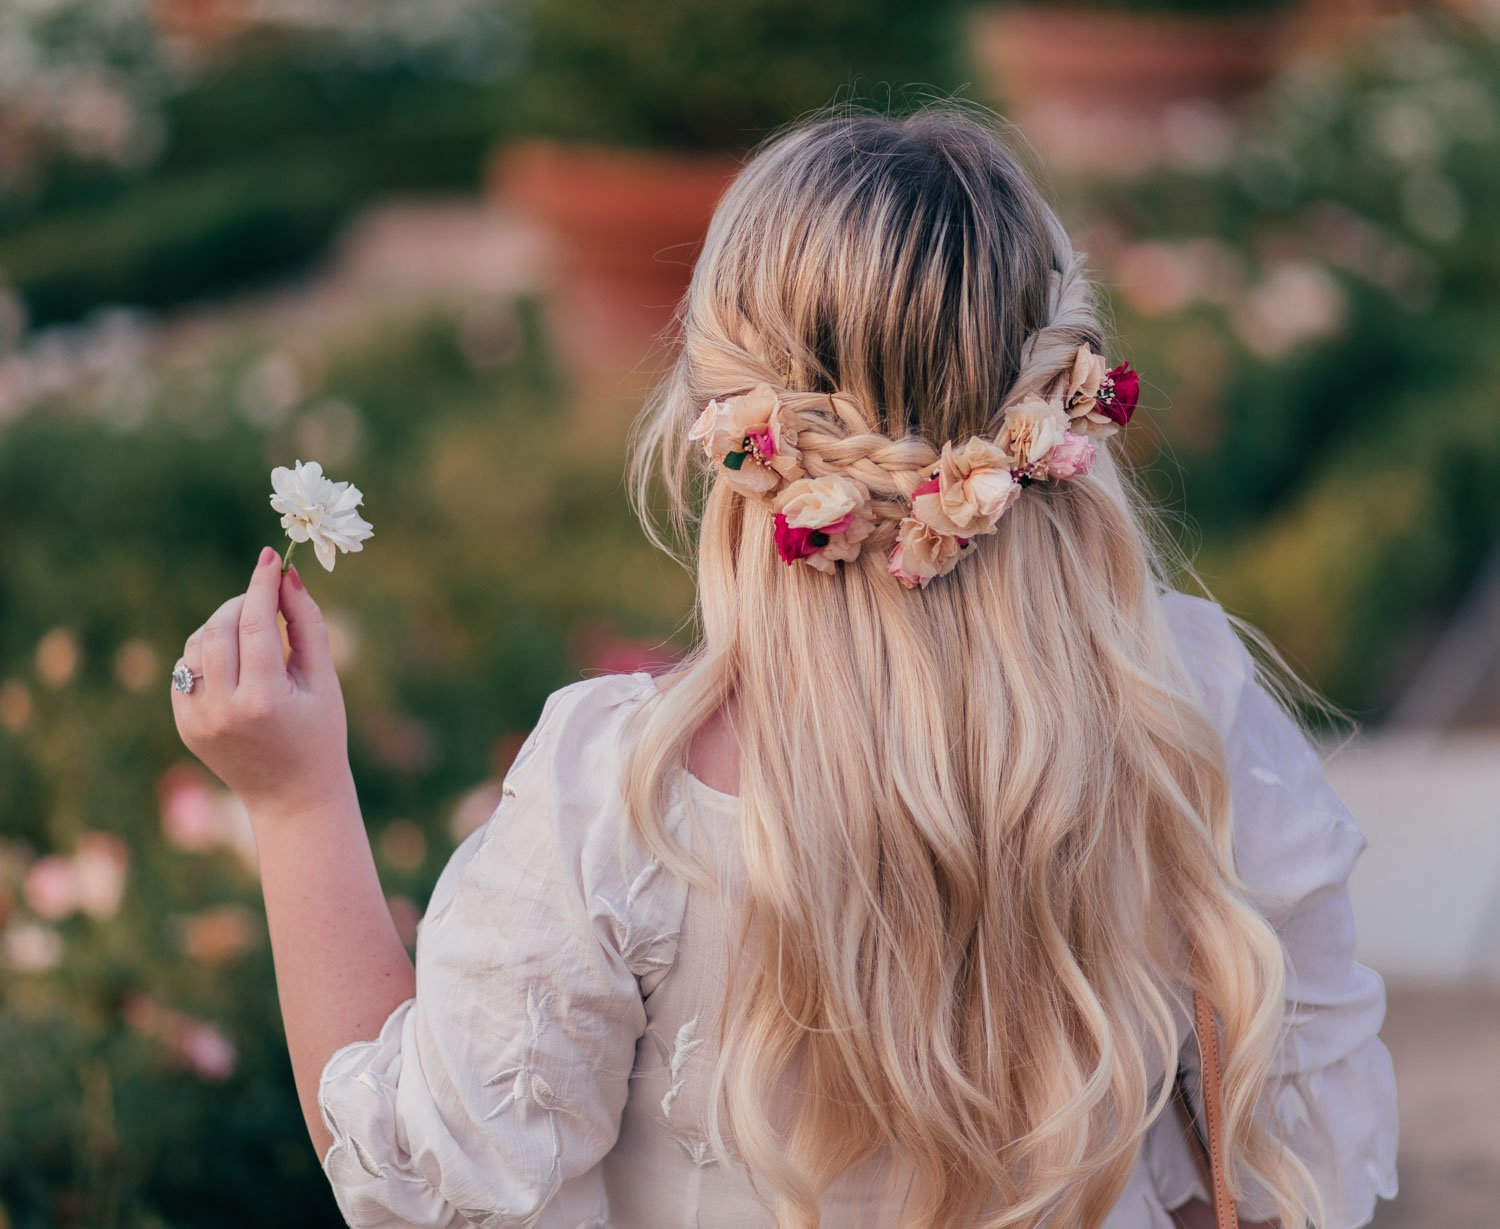 Feminine Fashion Blogger Elizabeth Hugen of Lizzie in Lace shares her girly hair accessories collection including these les couronnes de victoire hair pins